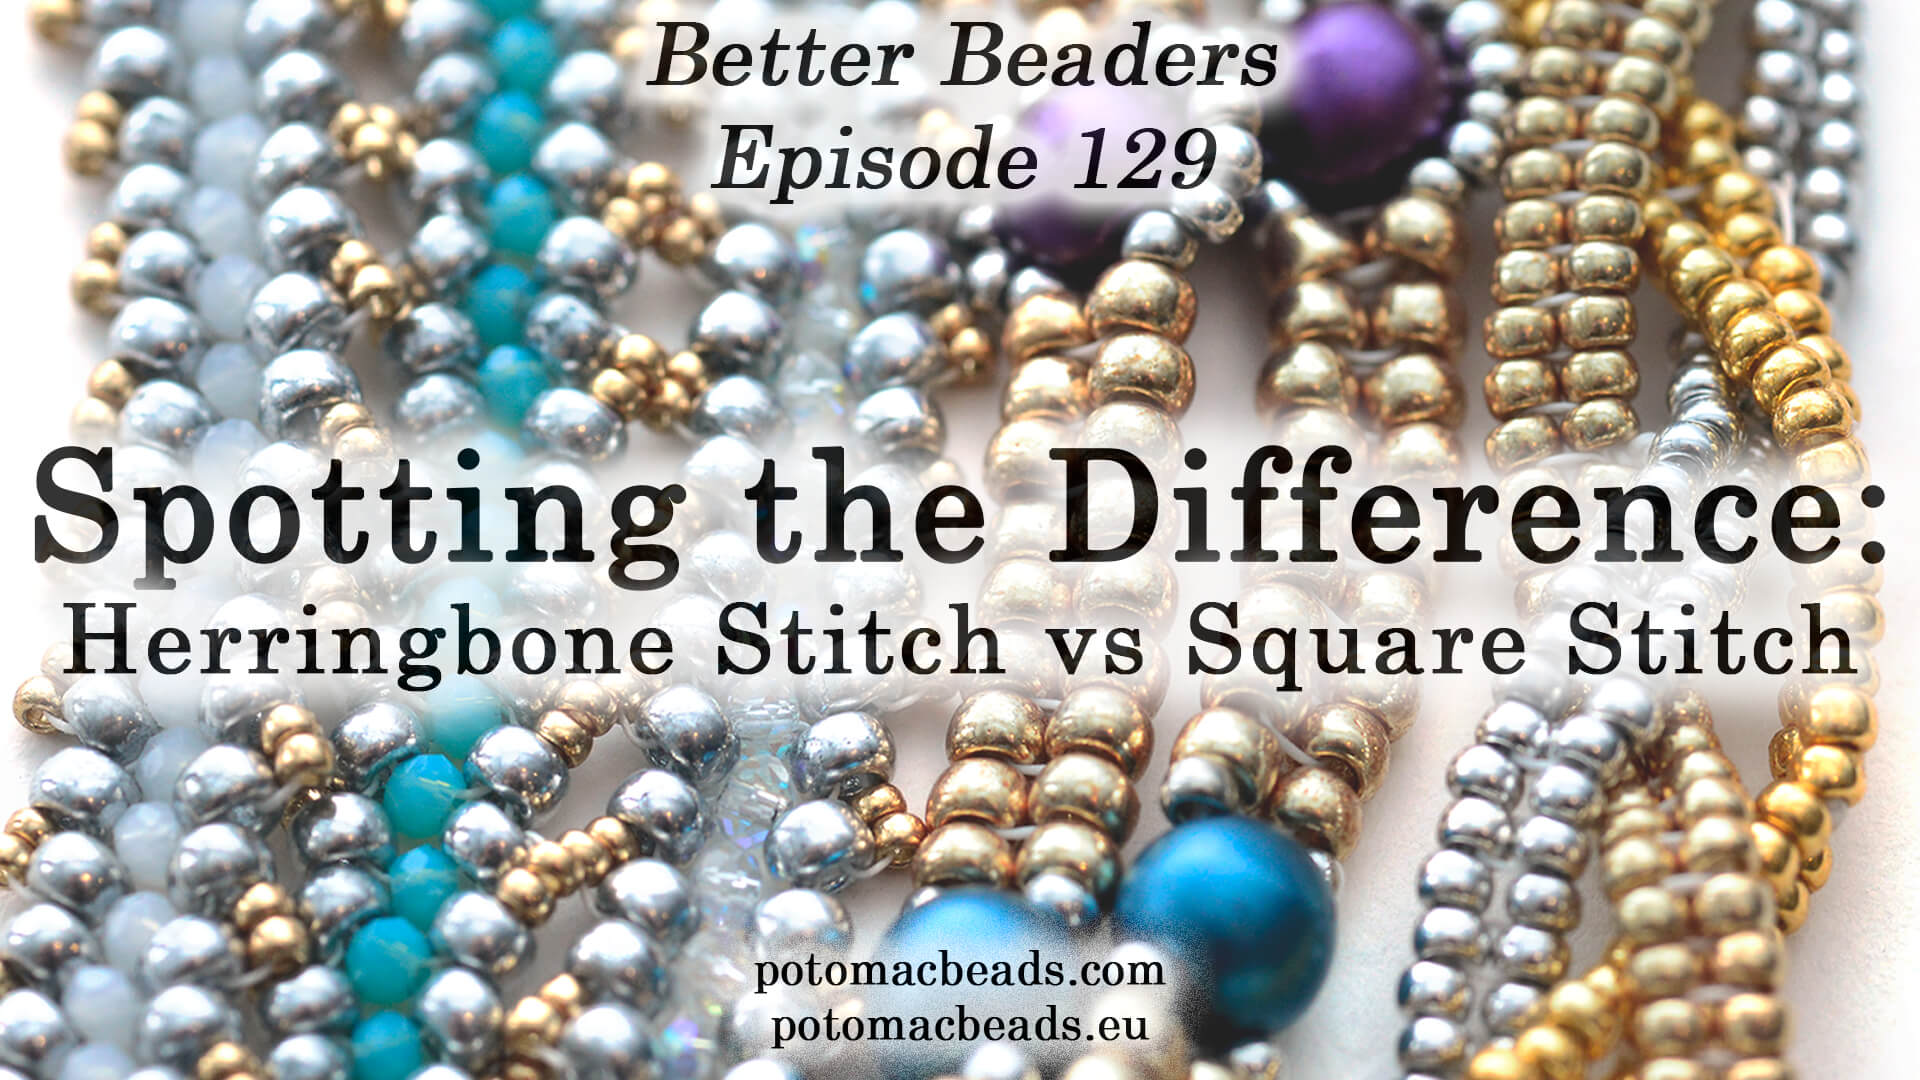 How to Bead / Better Beader Episodes / Better Beader Episode 129 - Differences Between Herringbone & Square Stitch